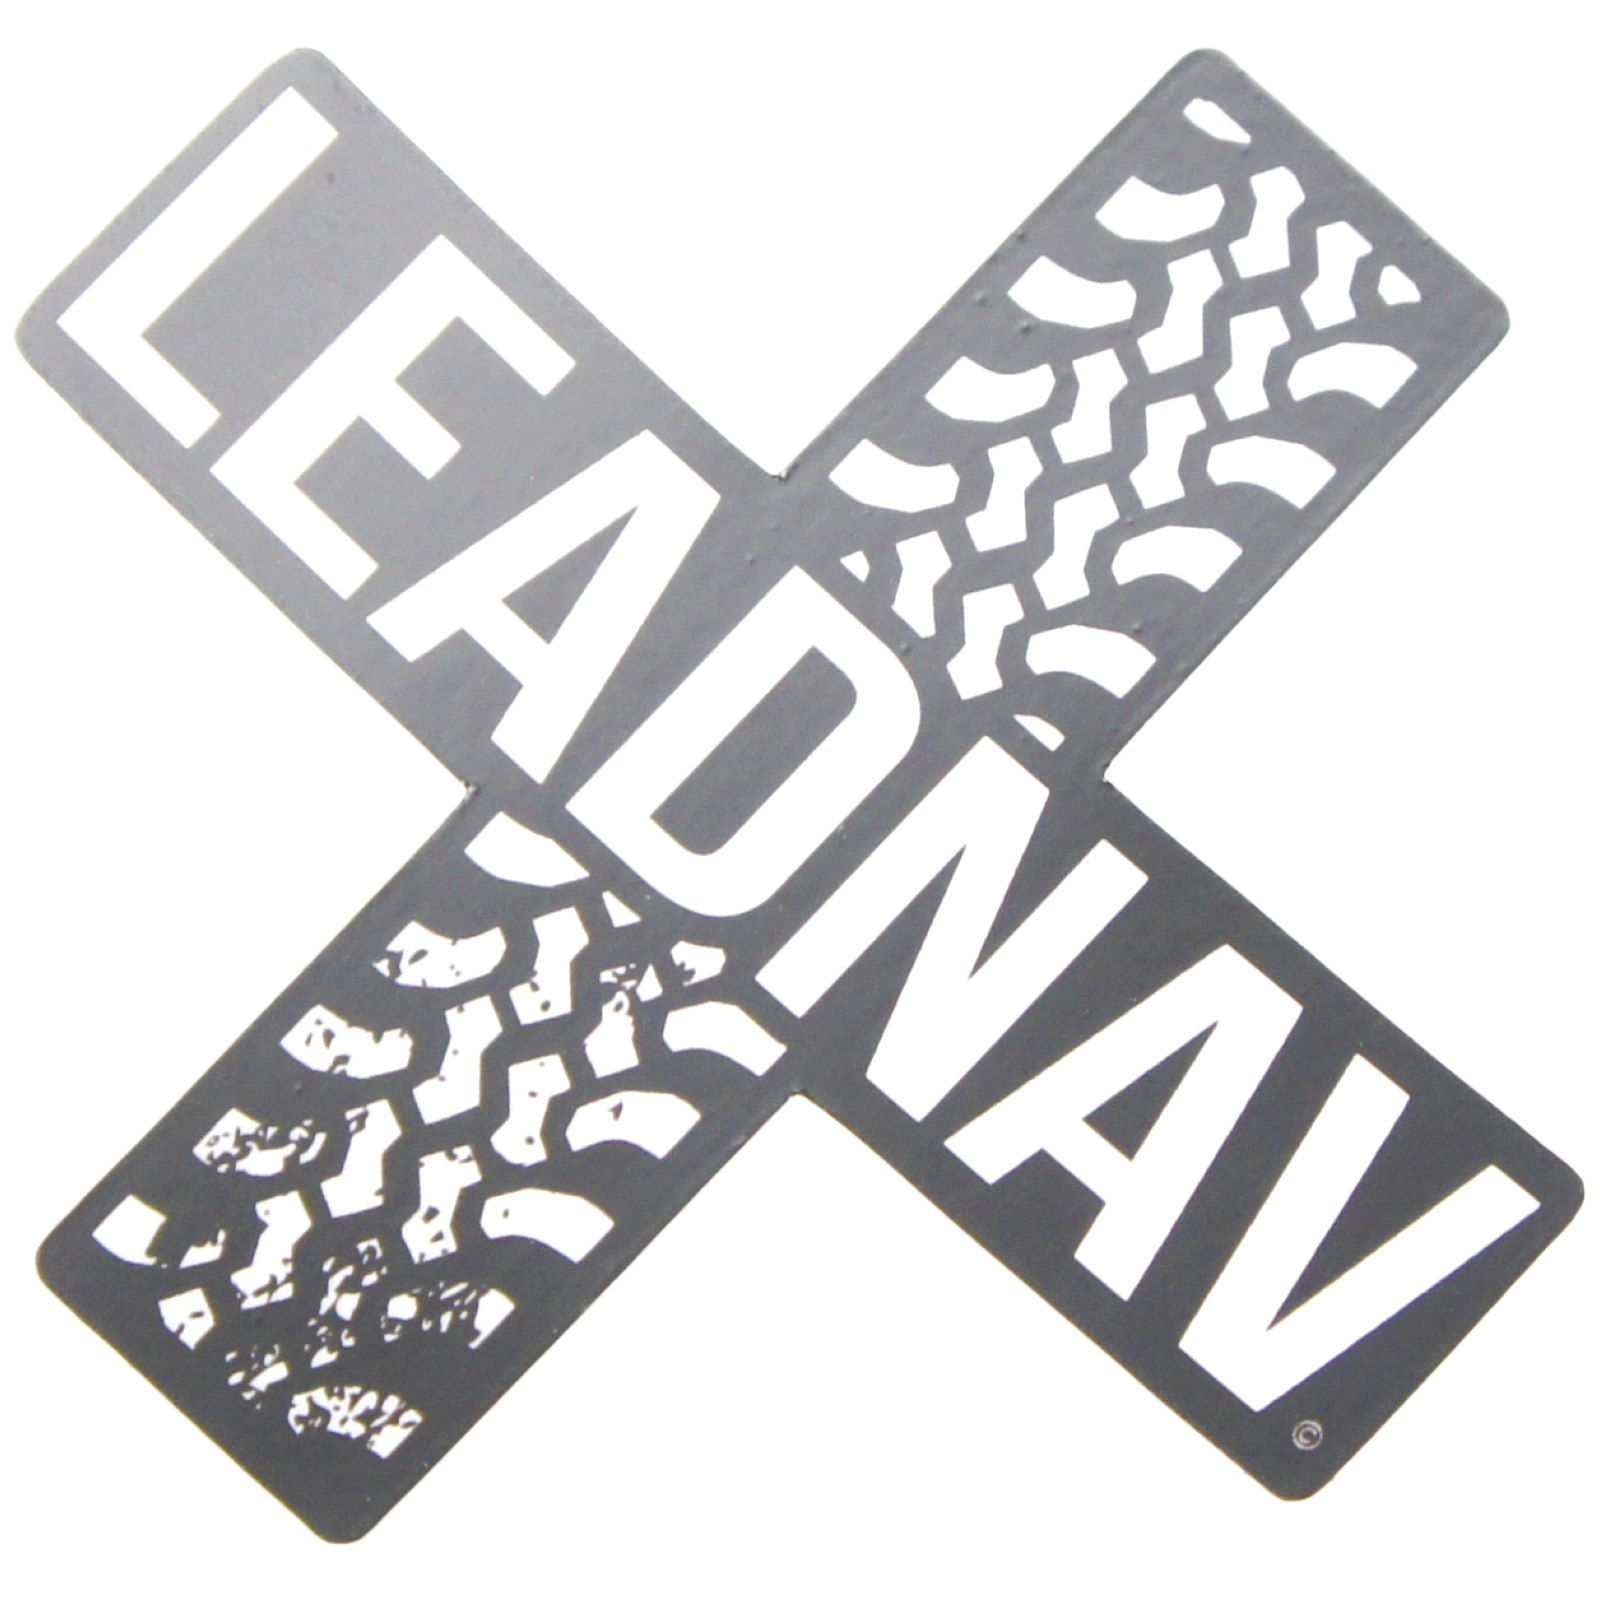 20070179 LEADNAV SYSTEMS スティッカーB